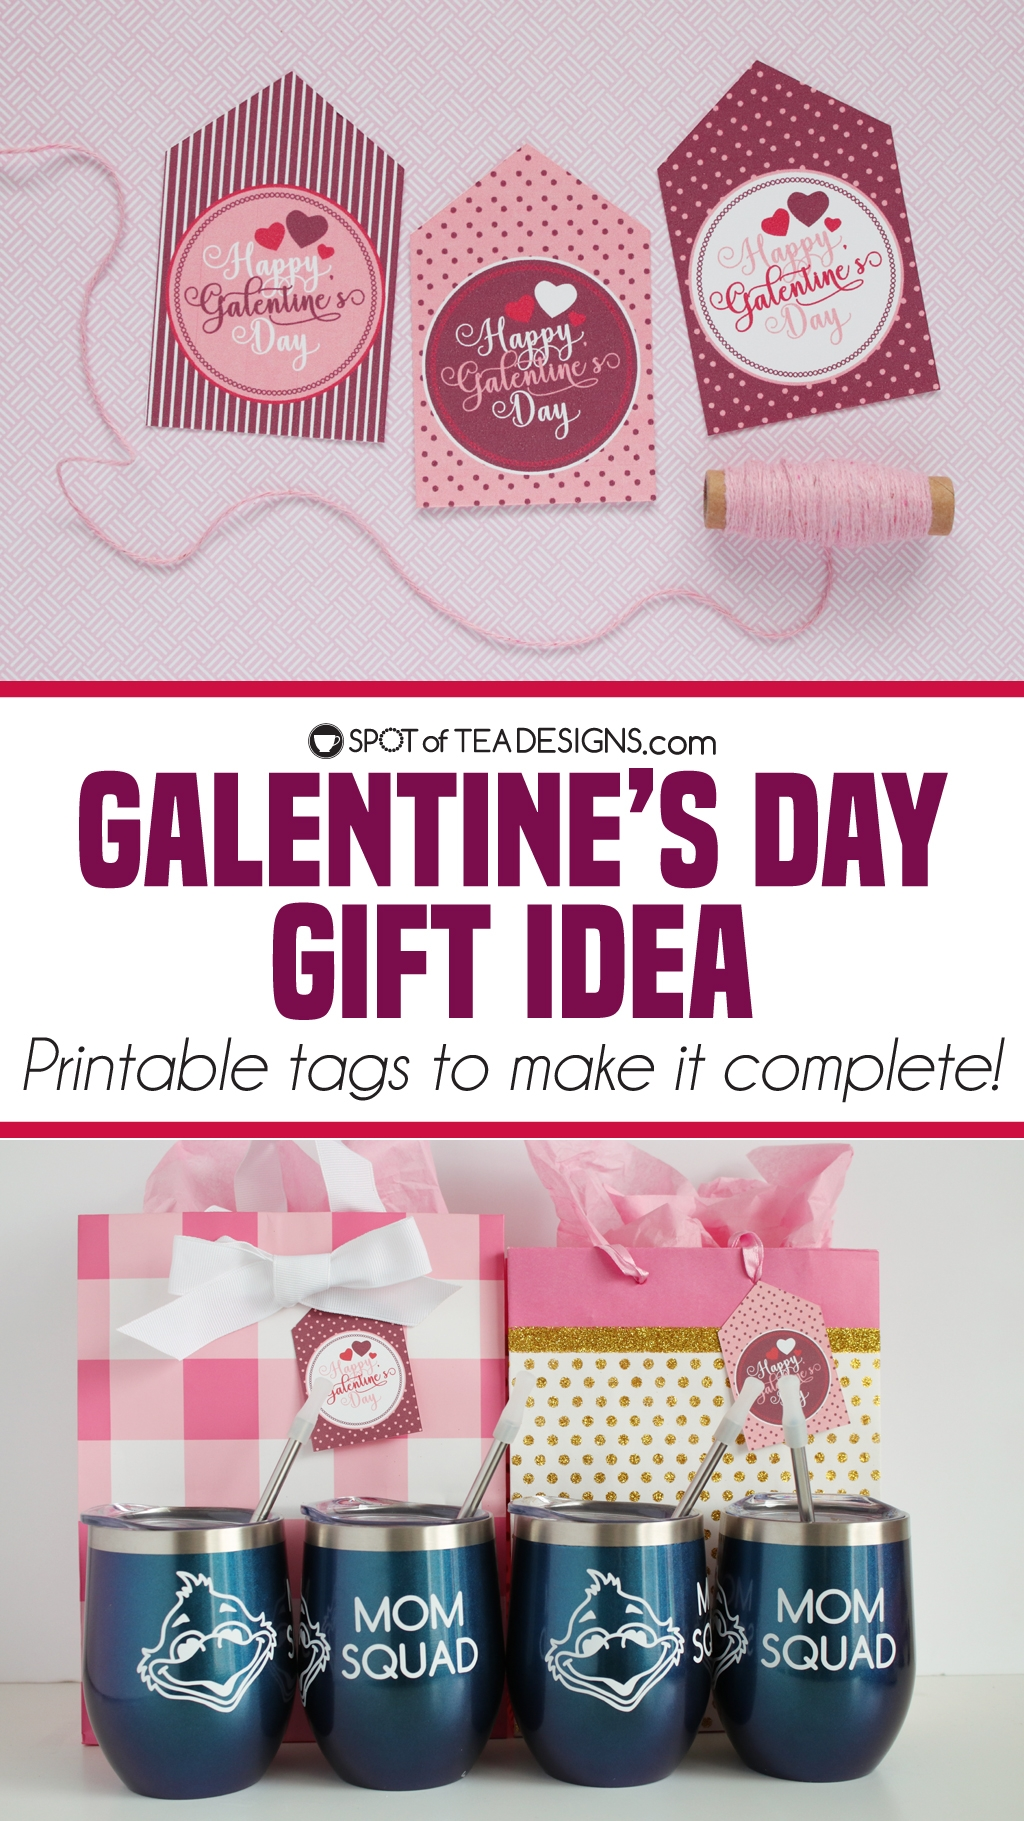 Happy Galentine's Day printable tags - plus a gift idea to give your girl squad! | spotofteadesigns.com